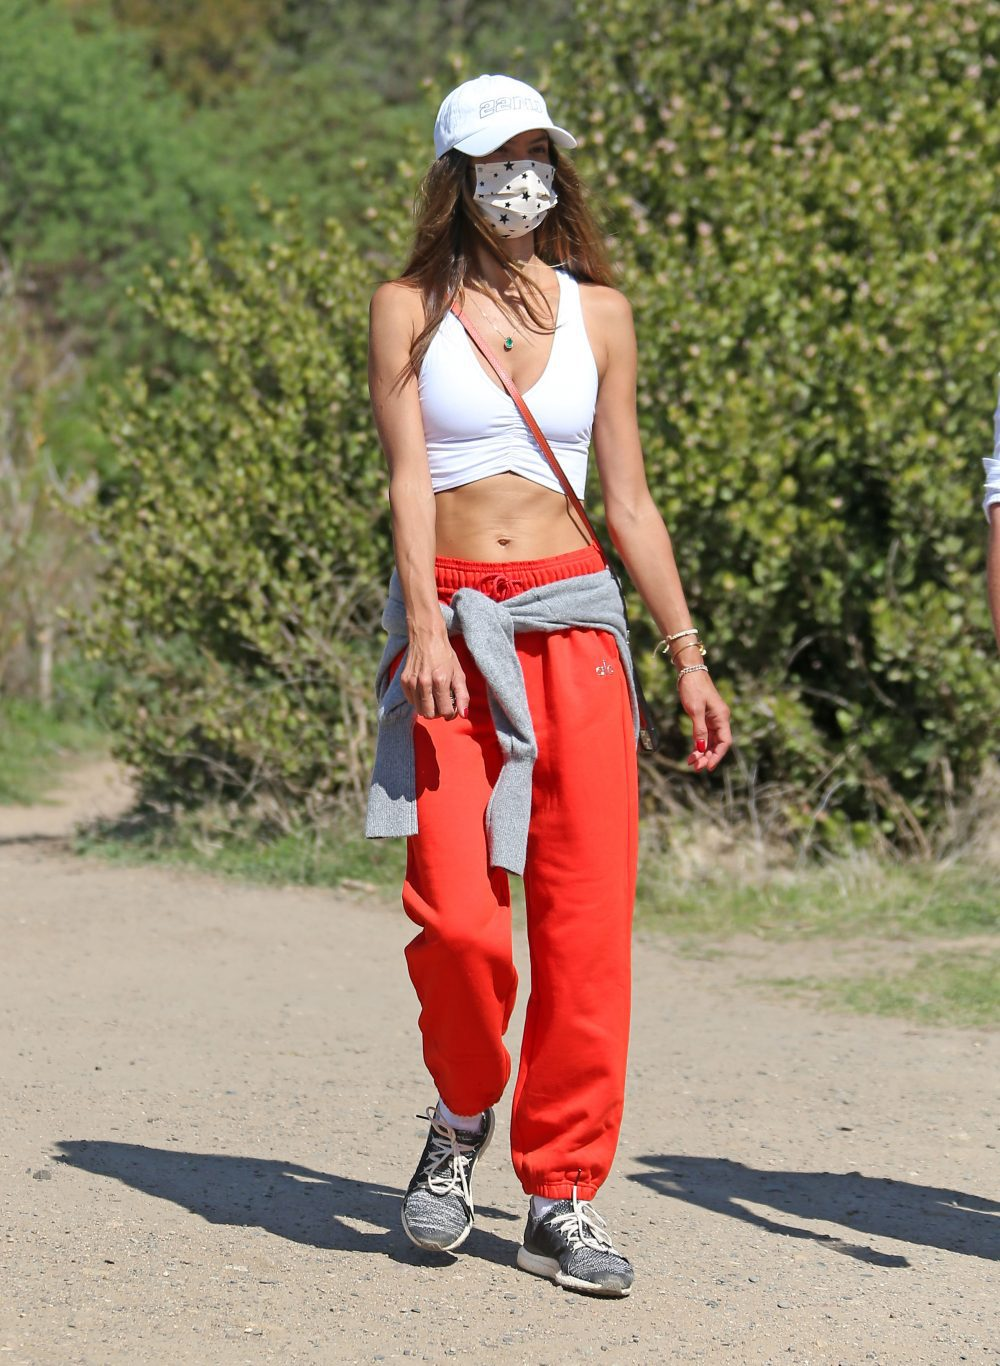 Alessandra Ambrosio out for a hike in Los Angeles with a friend